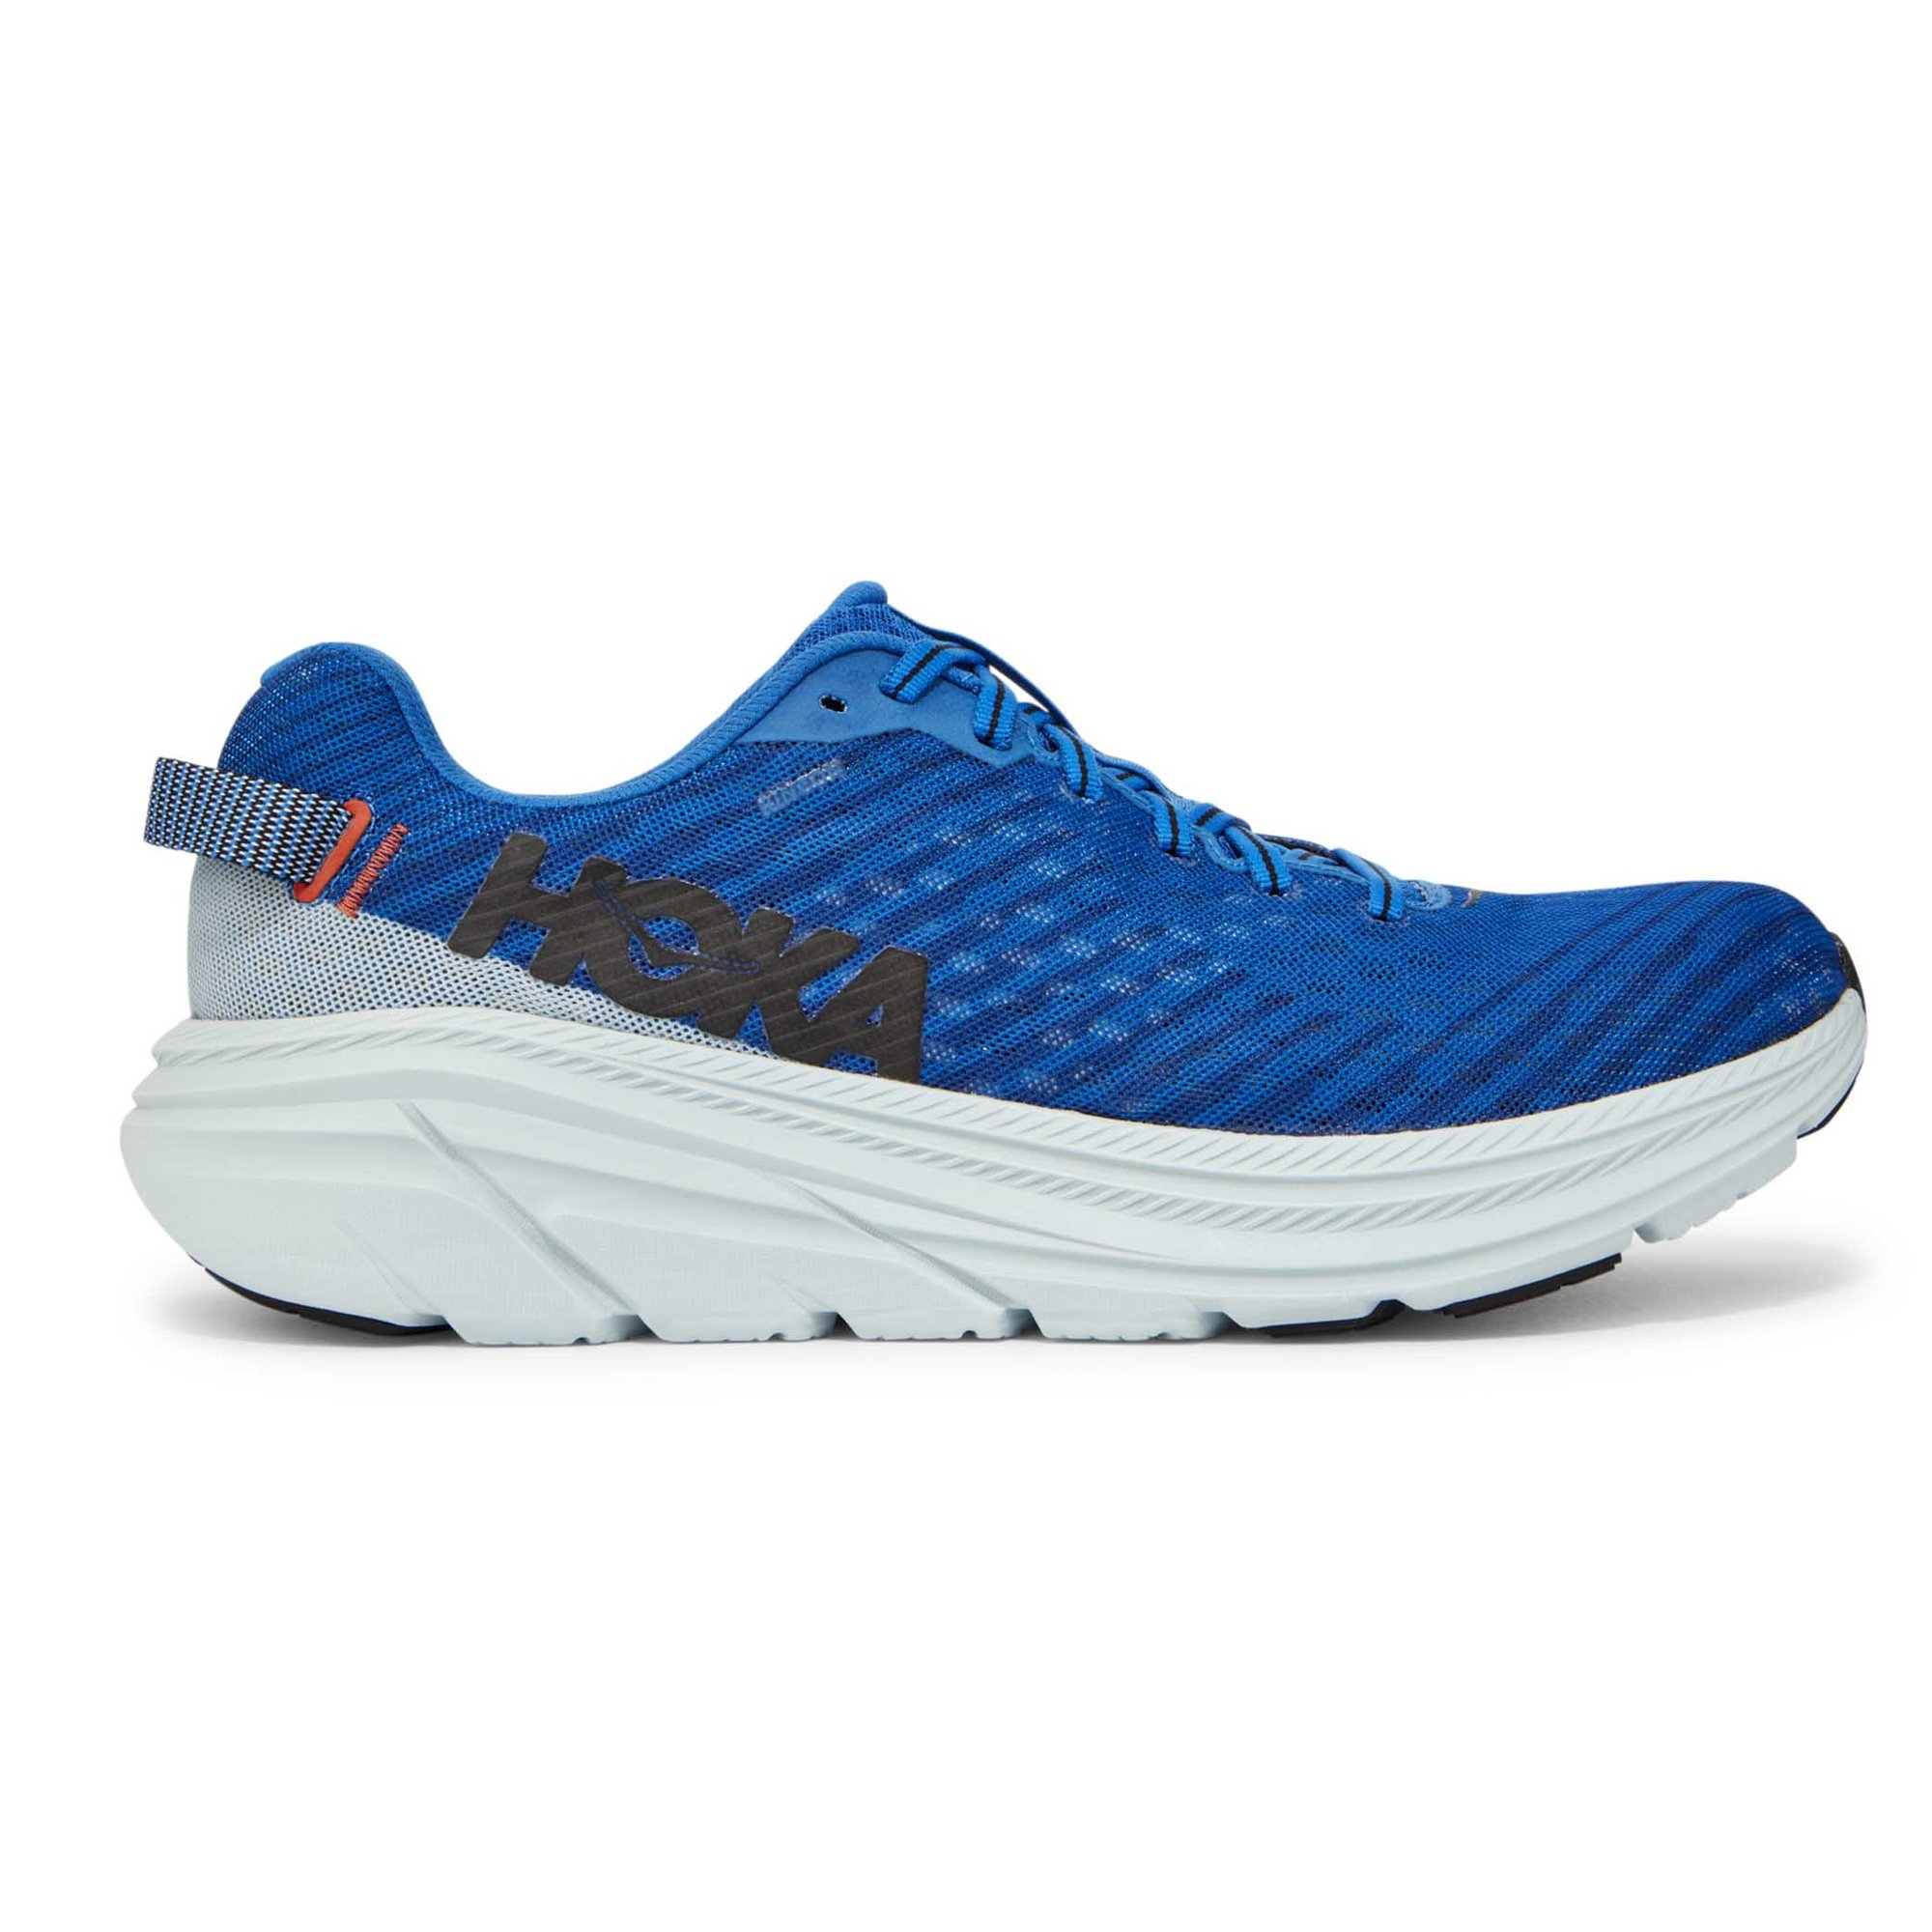 Hoka One One Rincon Blue/White